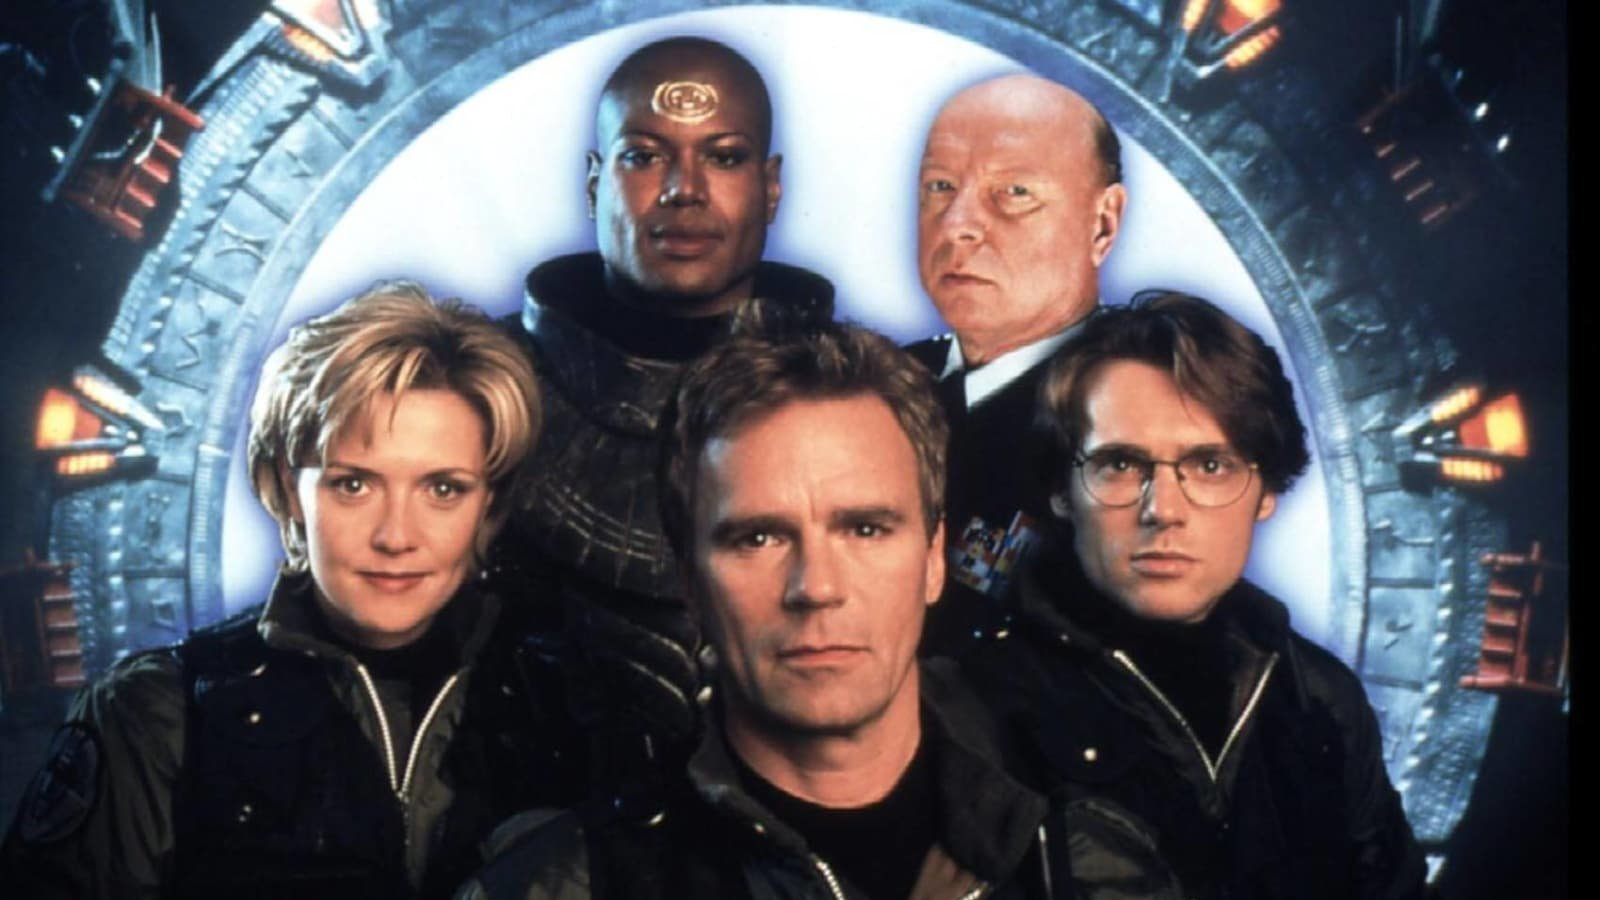 Stargate Is Being Rebooted With Two SG-1 Cast Involved, Here's Every News Item